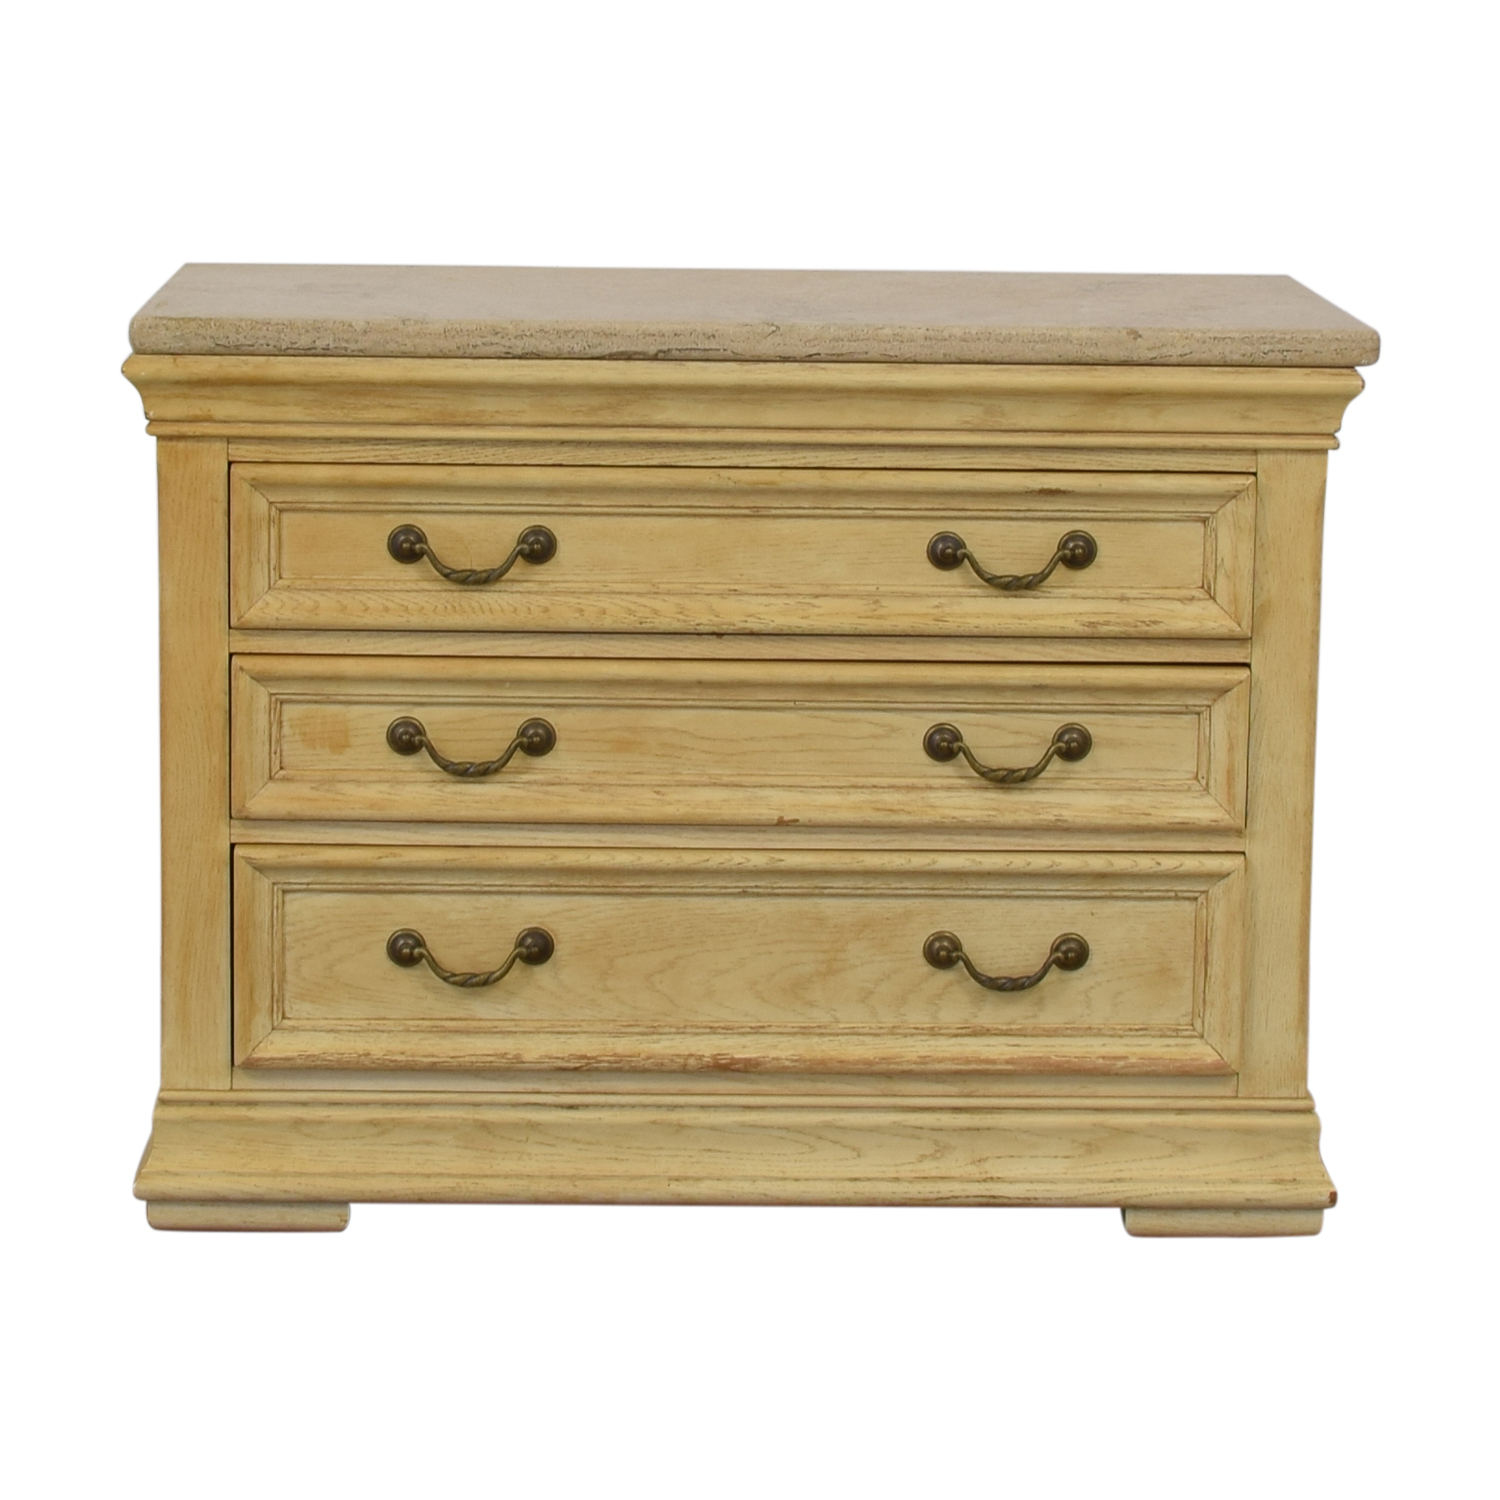 Bernhardt Bernhardt Natural Three-Drawer Dresser second hand